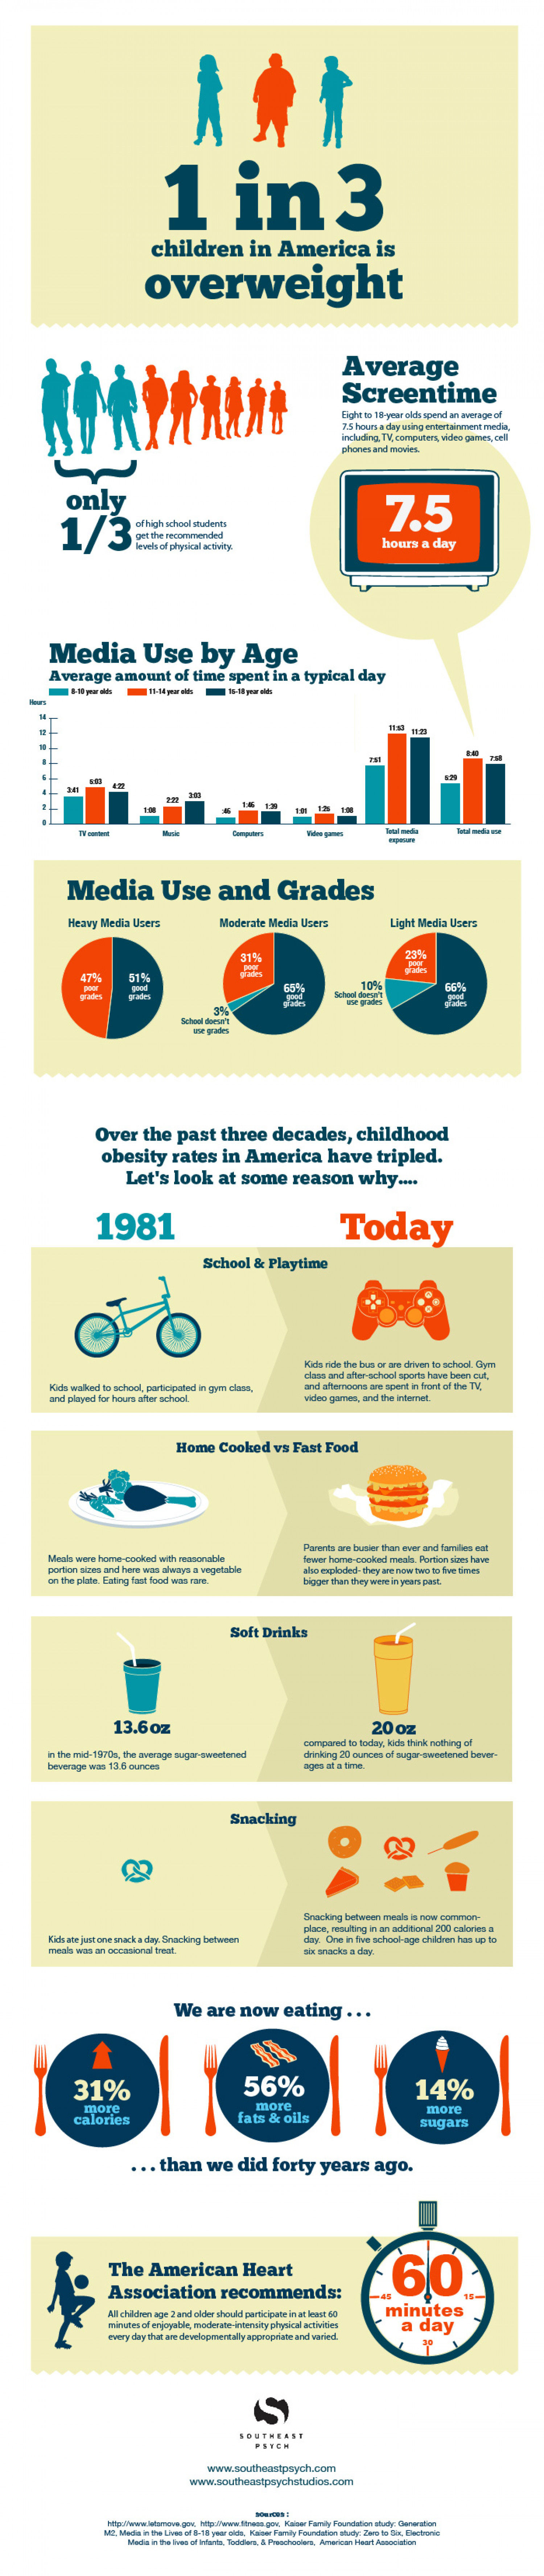 1 in 3 children in America is overweight Infographic